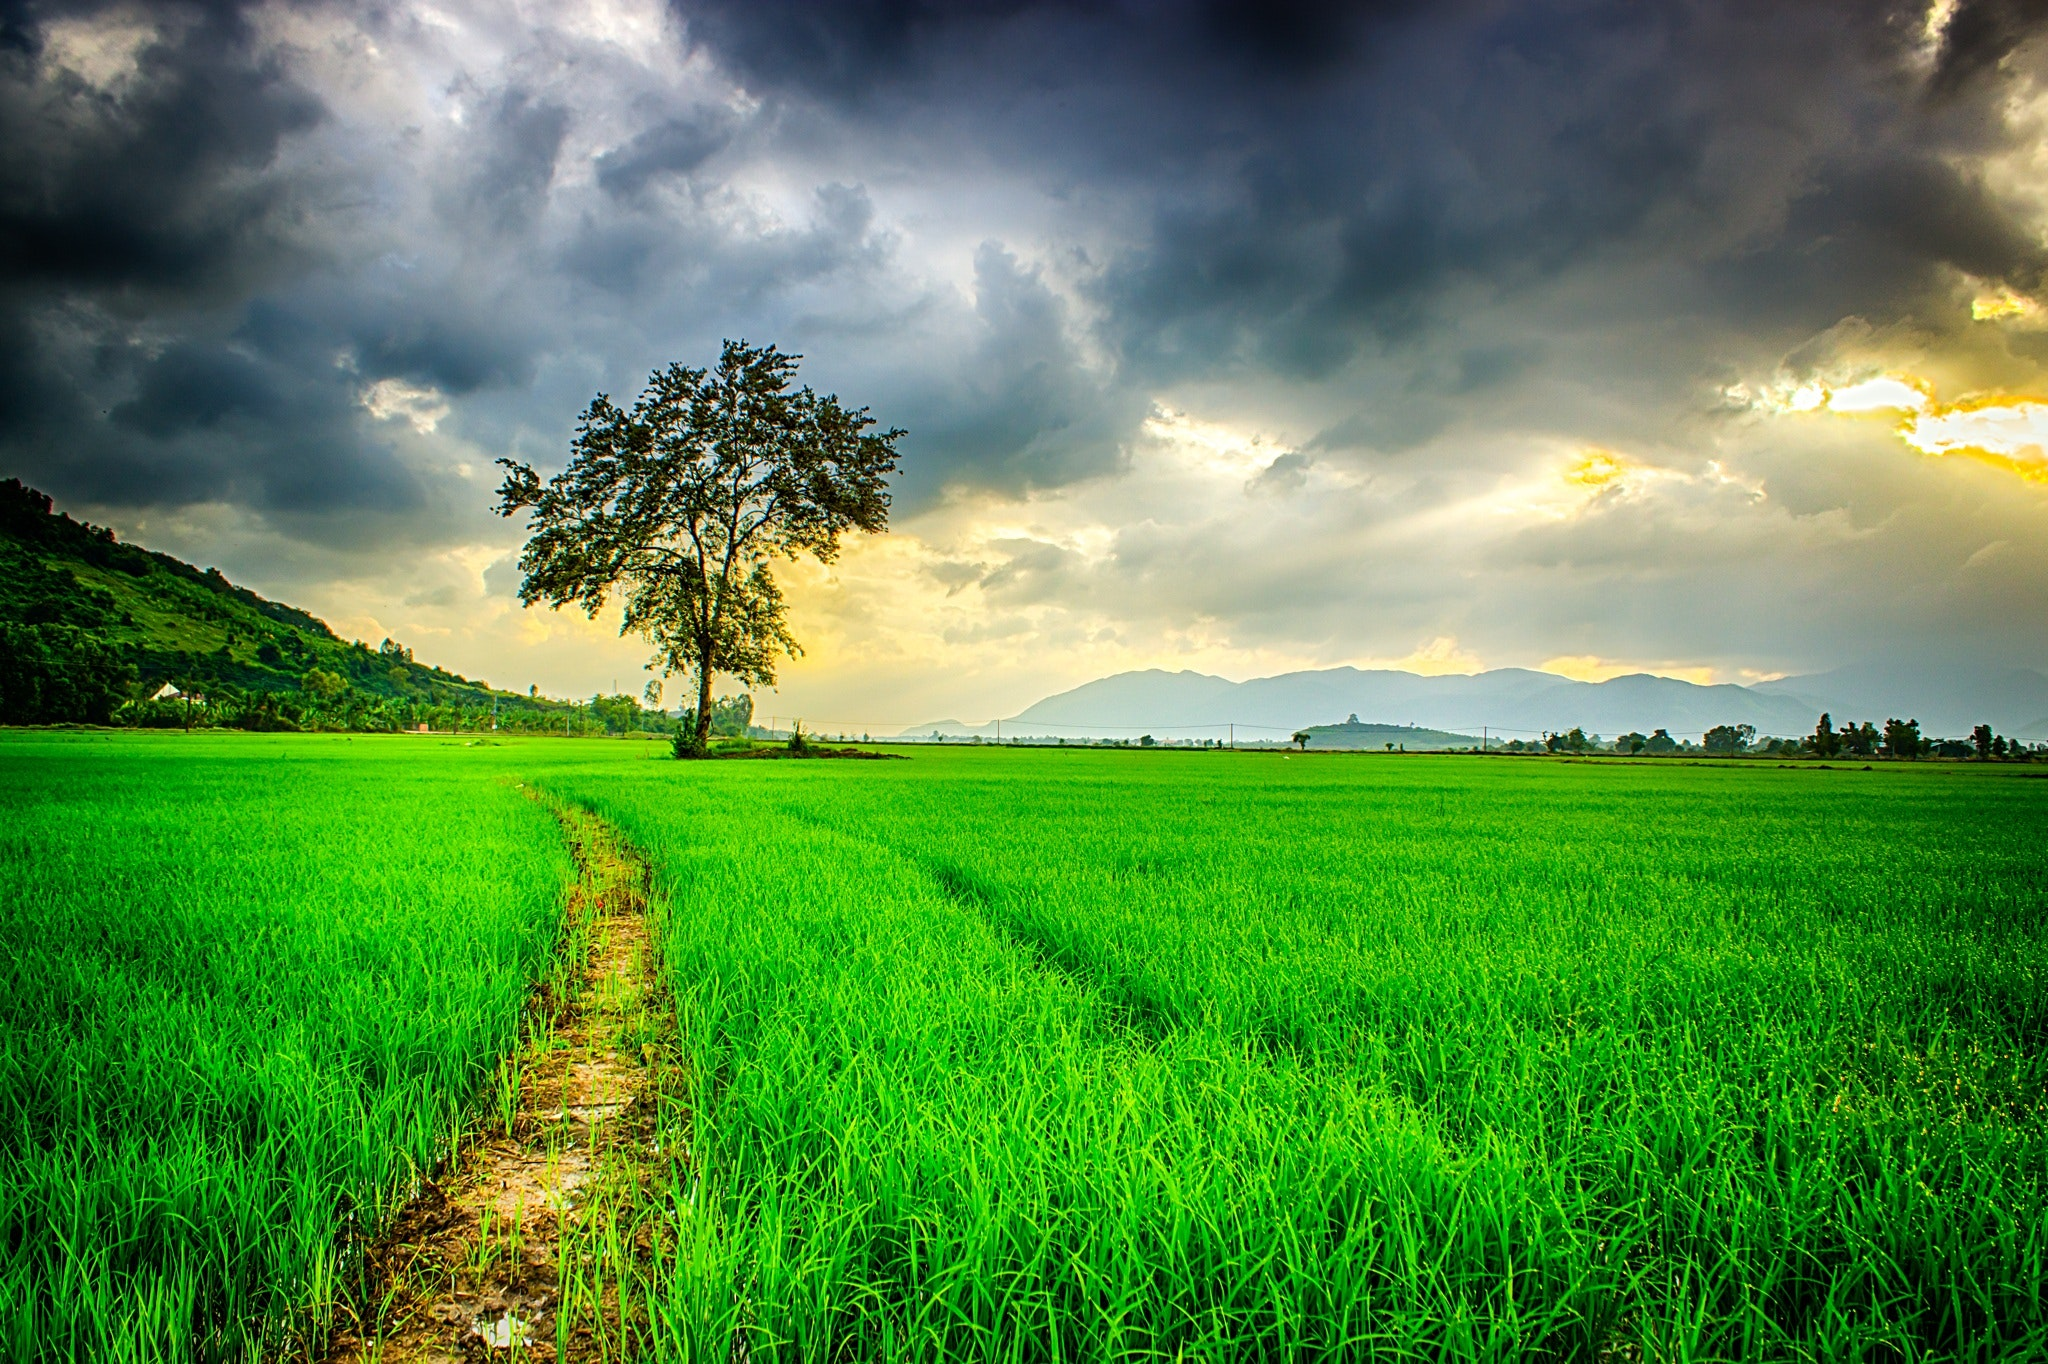 Nature Background Images Hd